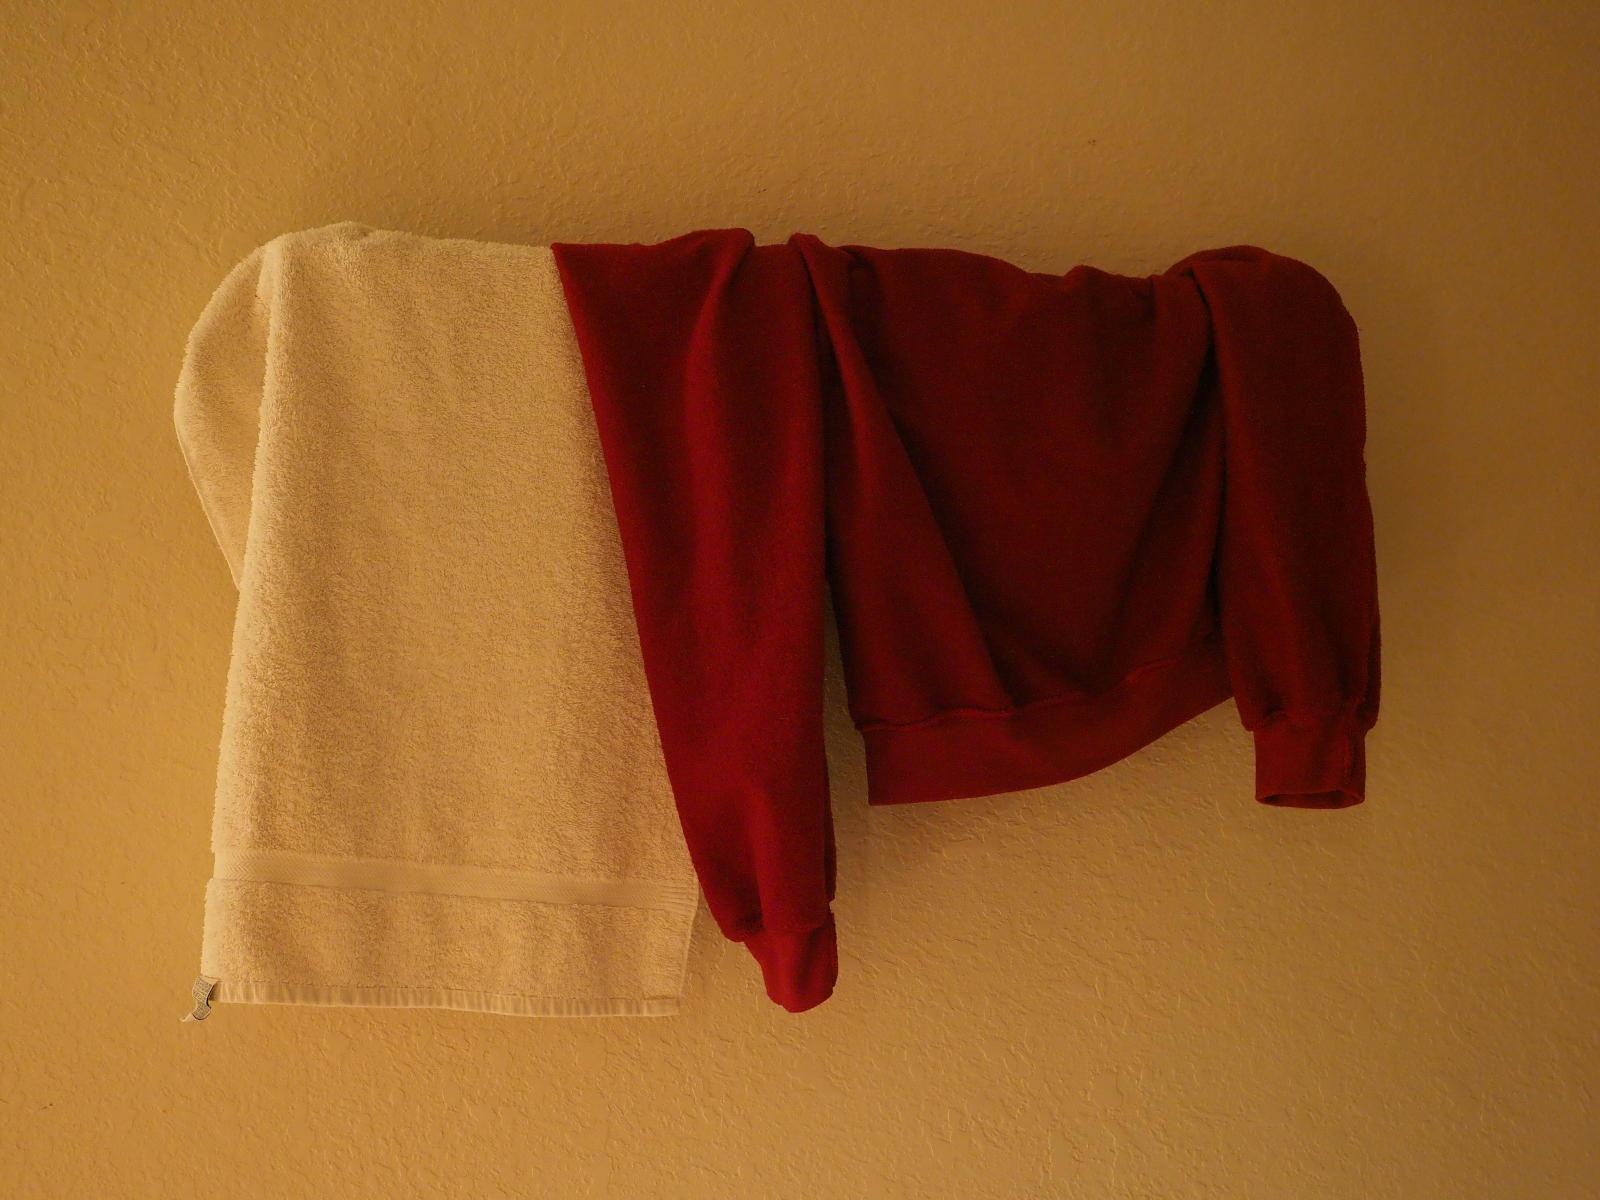 Picture of a towel rack in the dark - kc-em120015a-